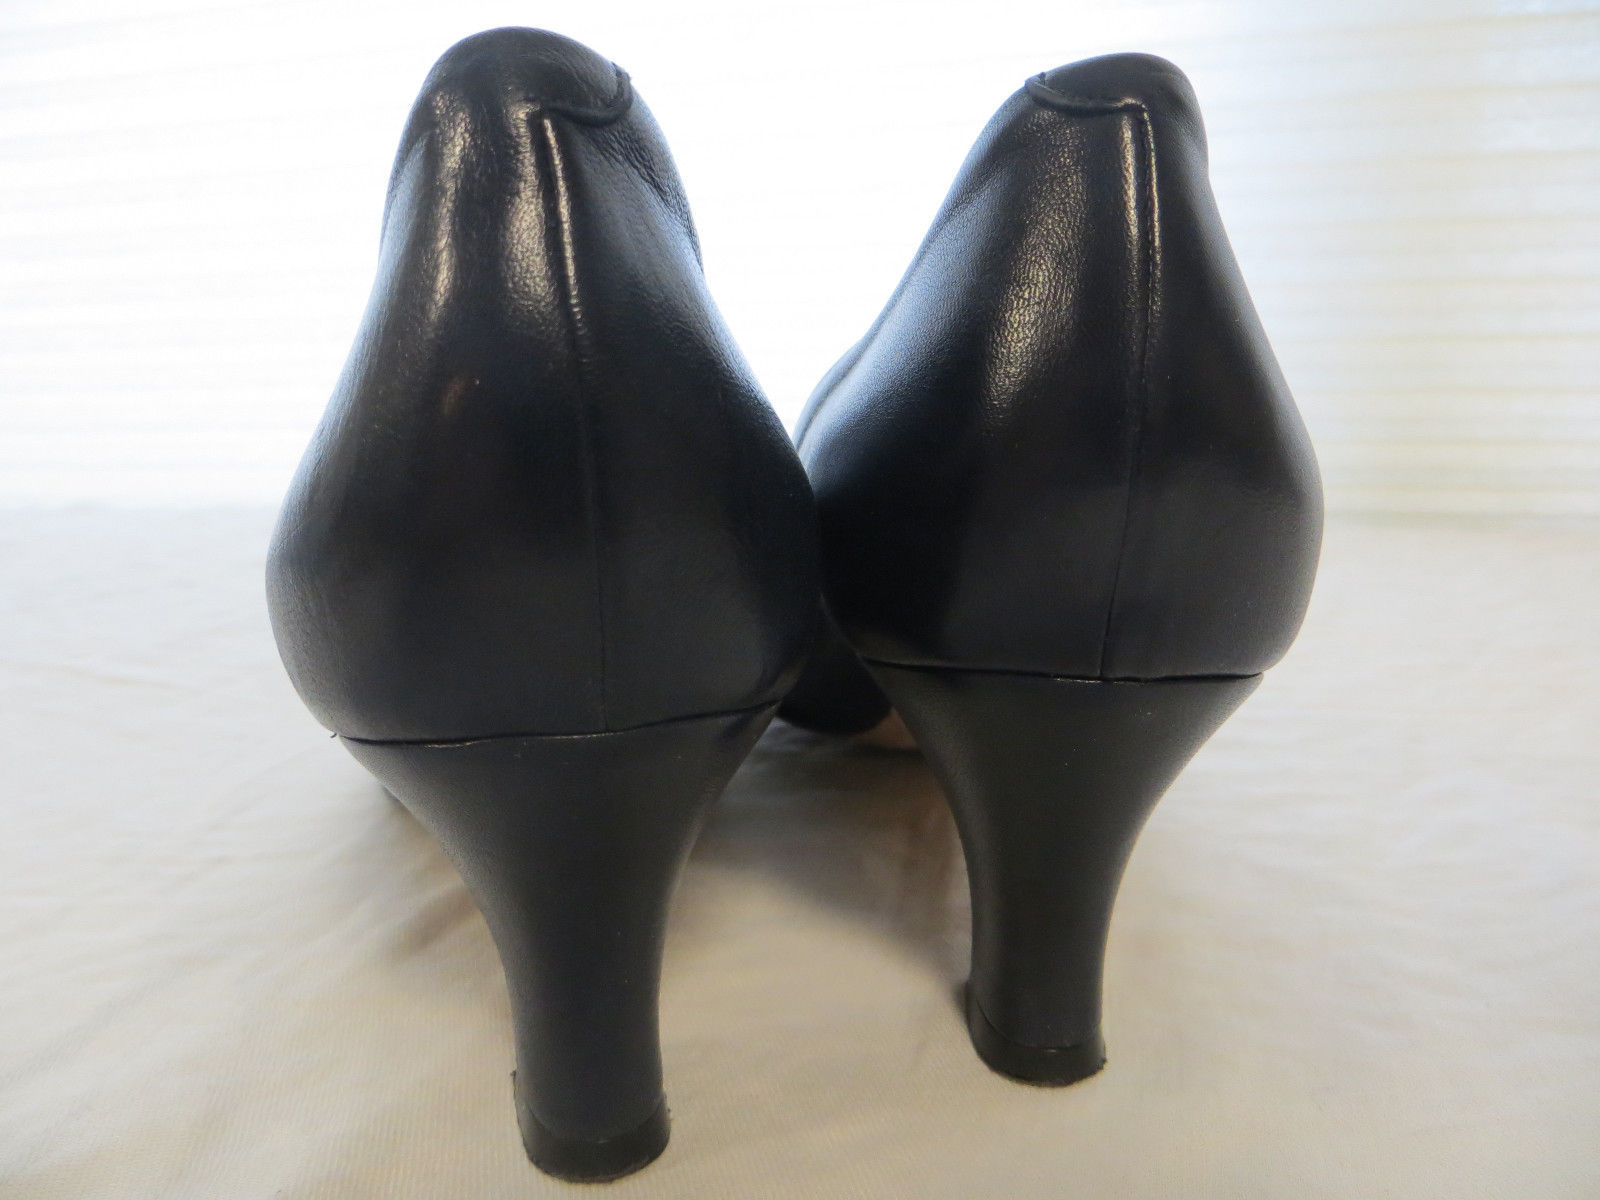 Vintage BALLY Fern Navy Blue Leather Buckle Accent Pumps Heels Shoes Sz 8 N LN